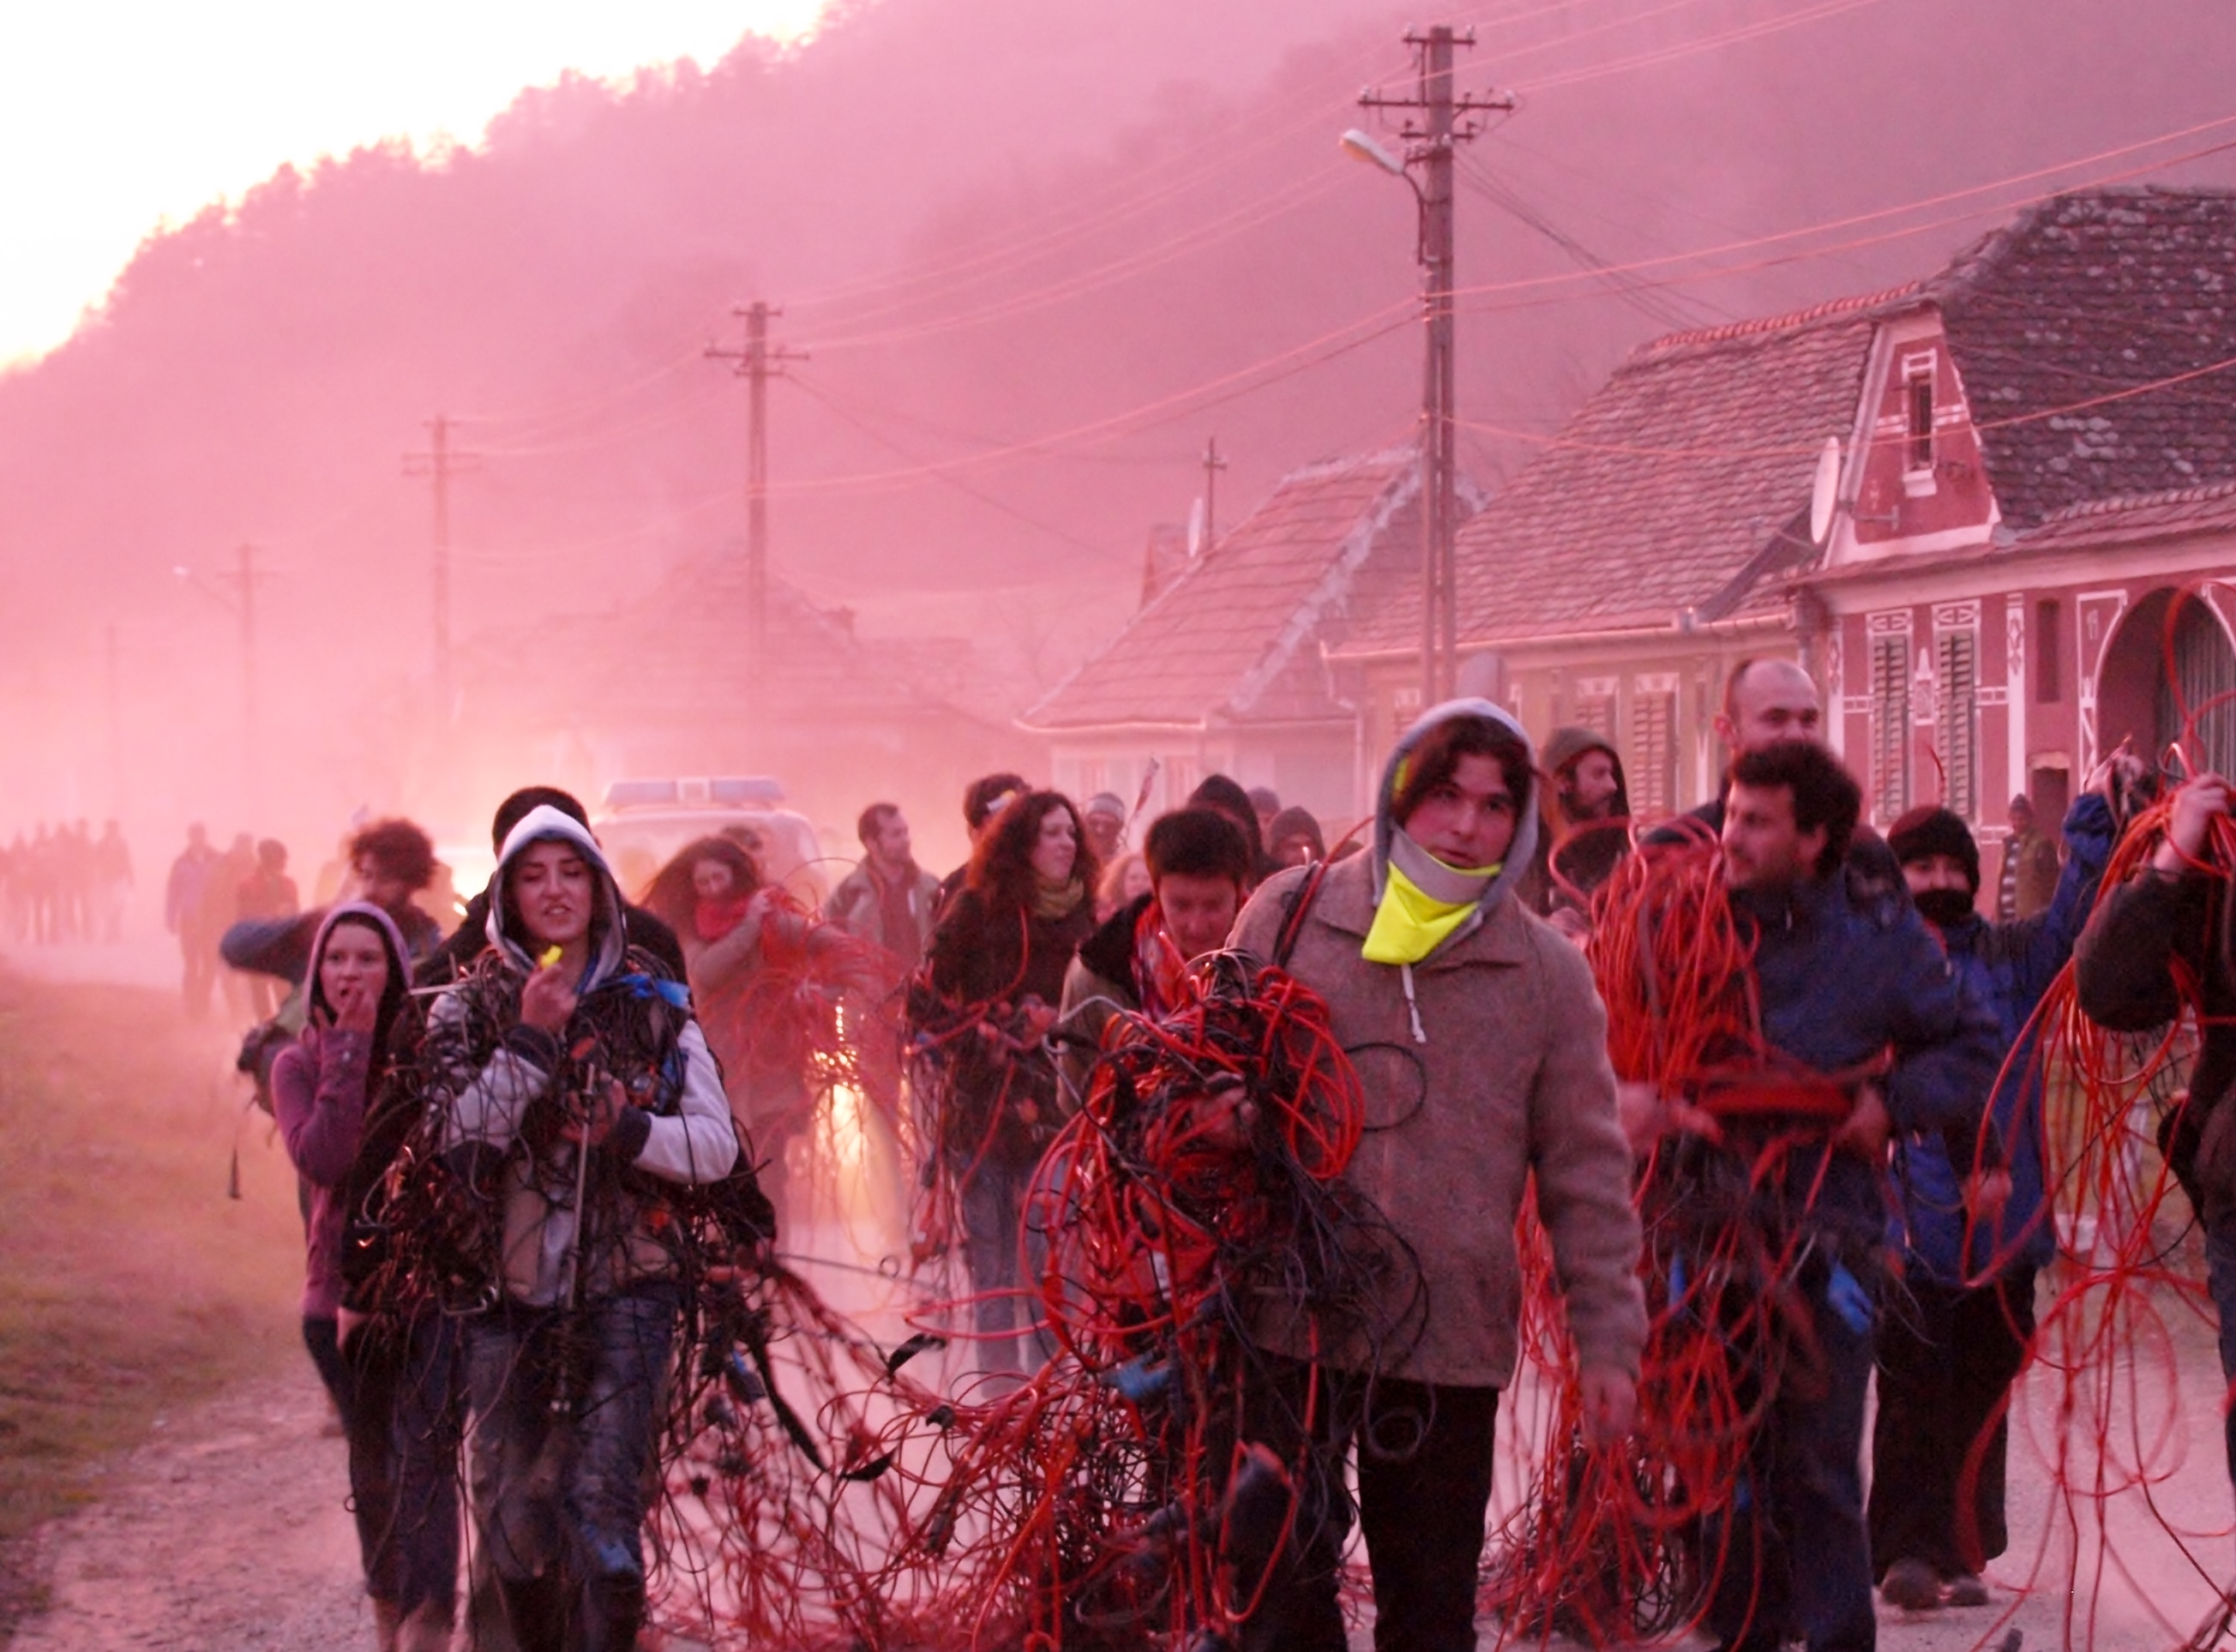 Direct Action Against Fracking 2013 in Romania. Click for more